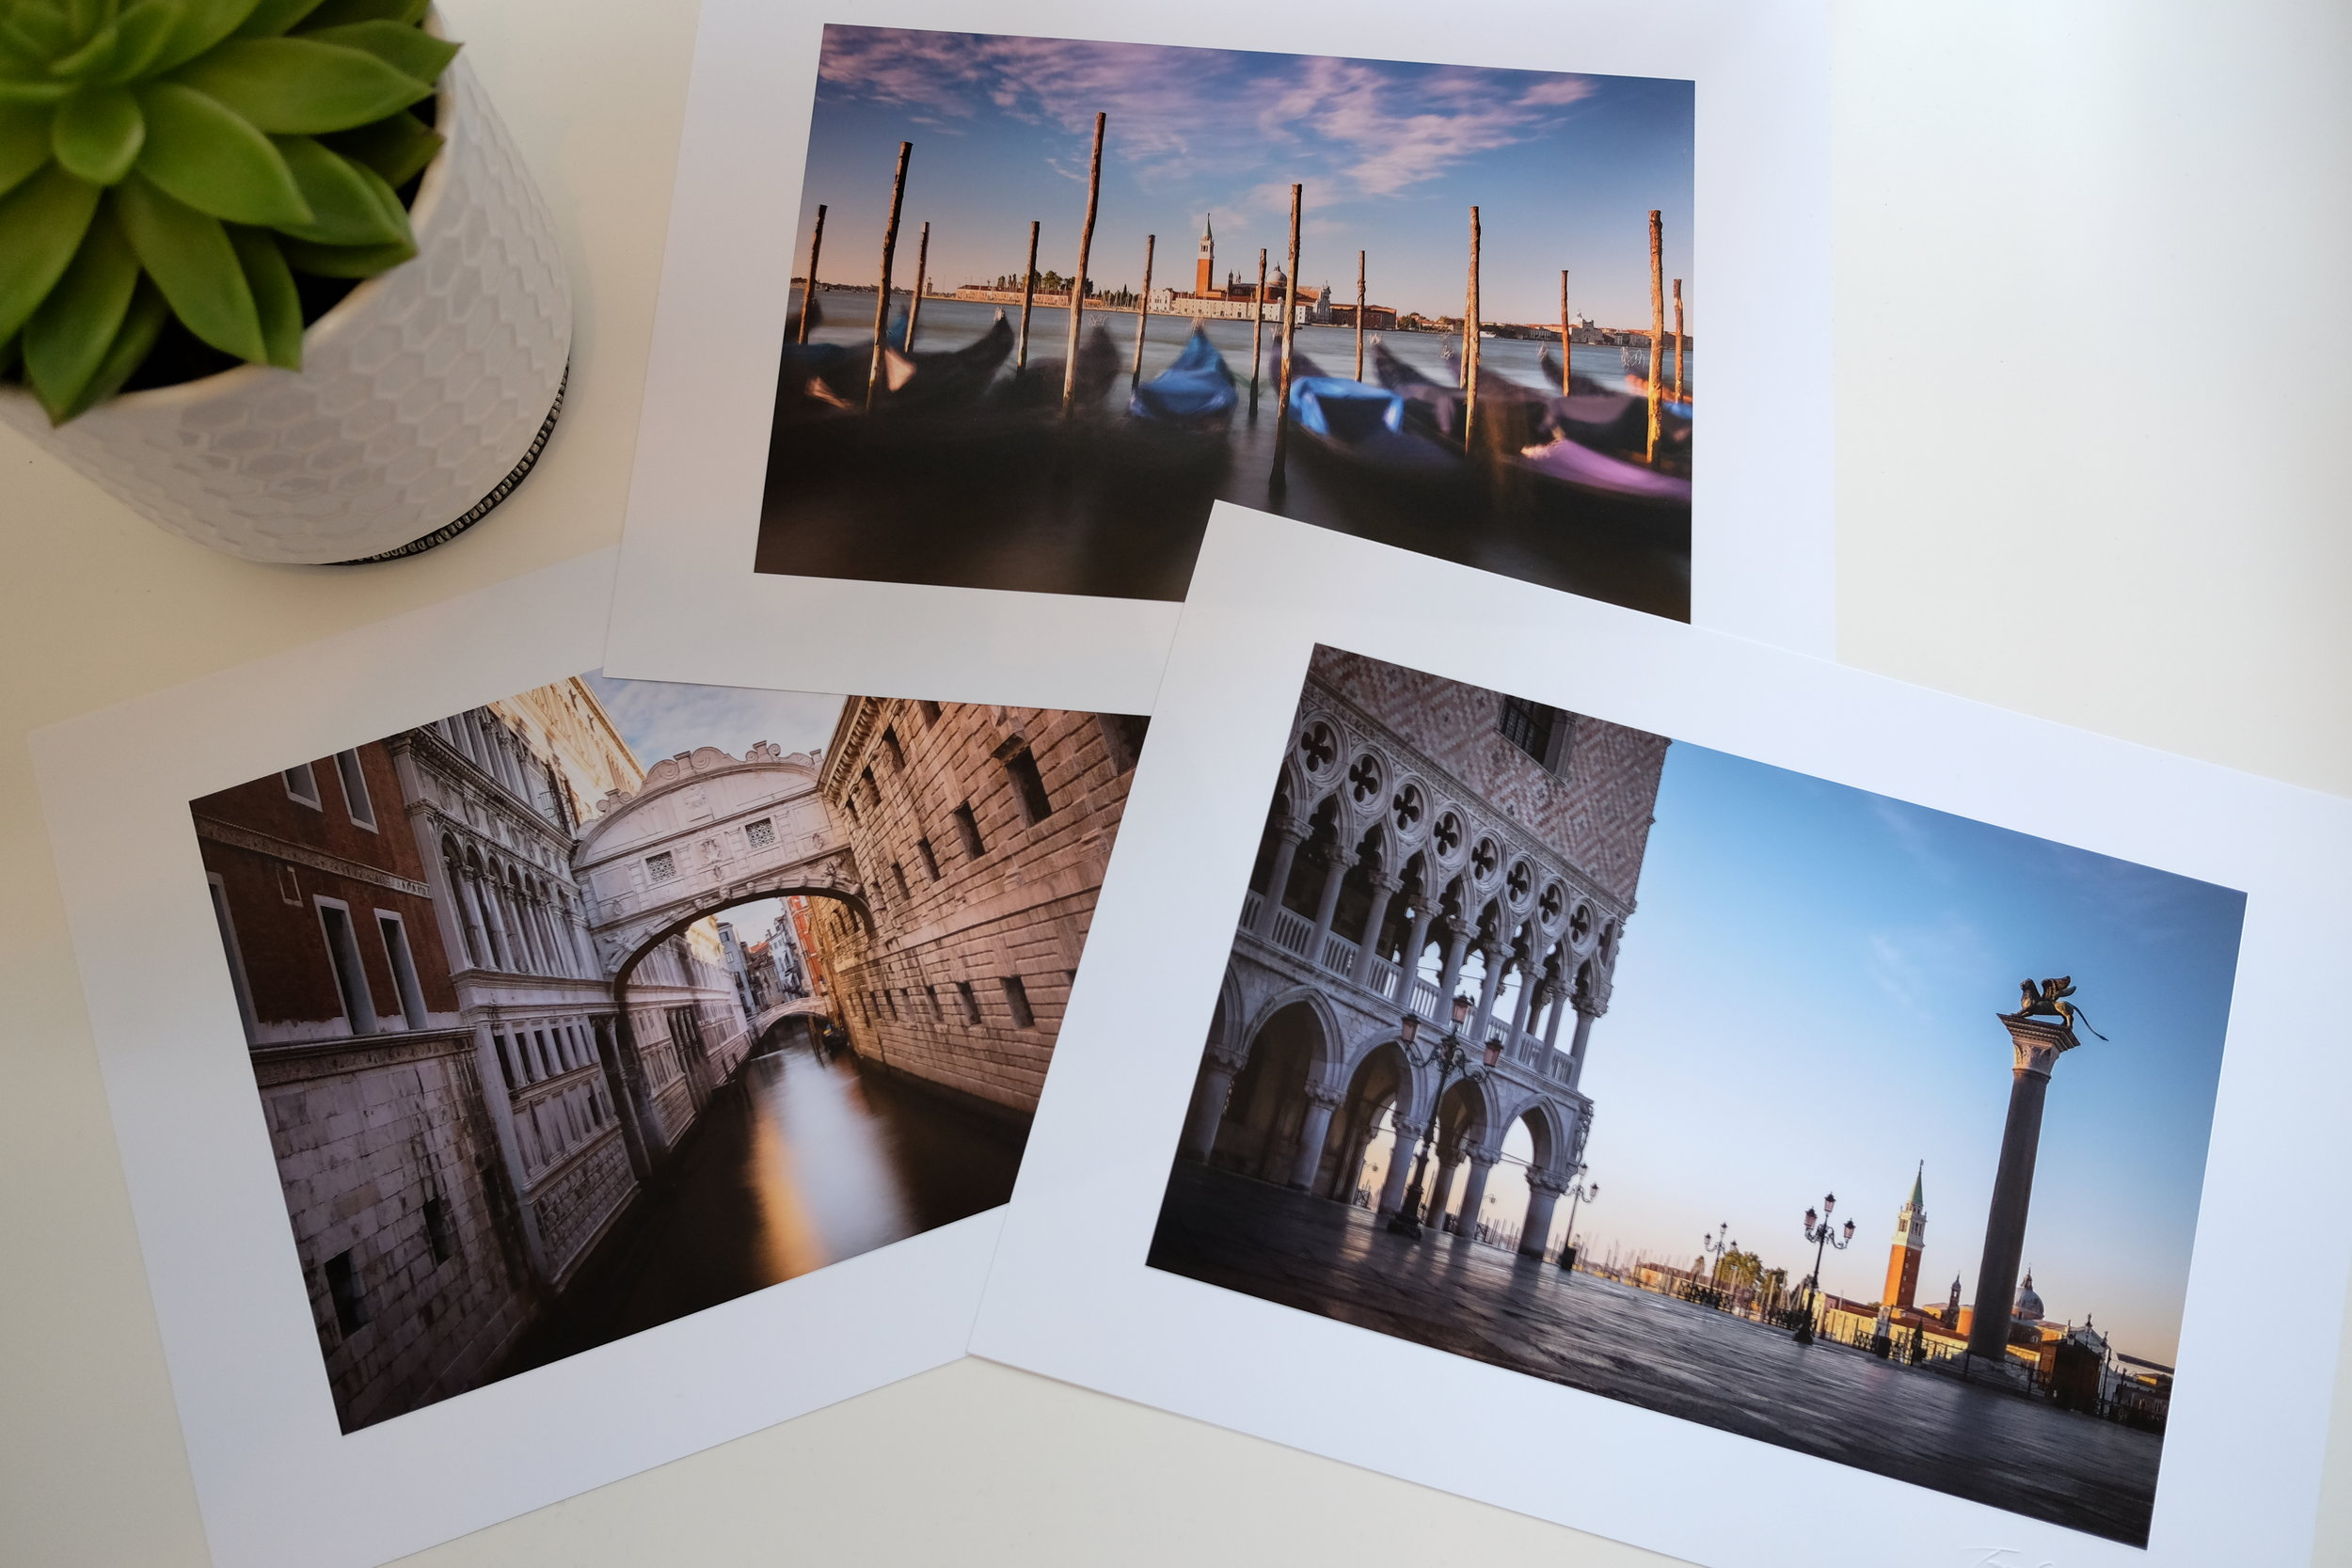 Photo of three printed images of Venice by Trevor Sherwin